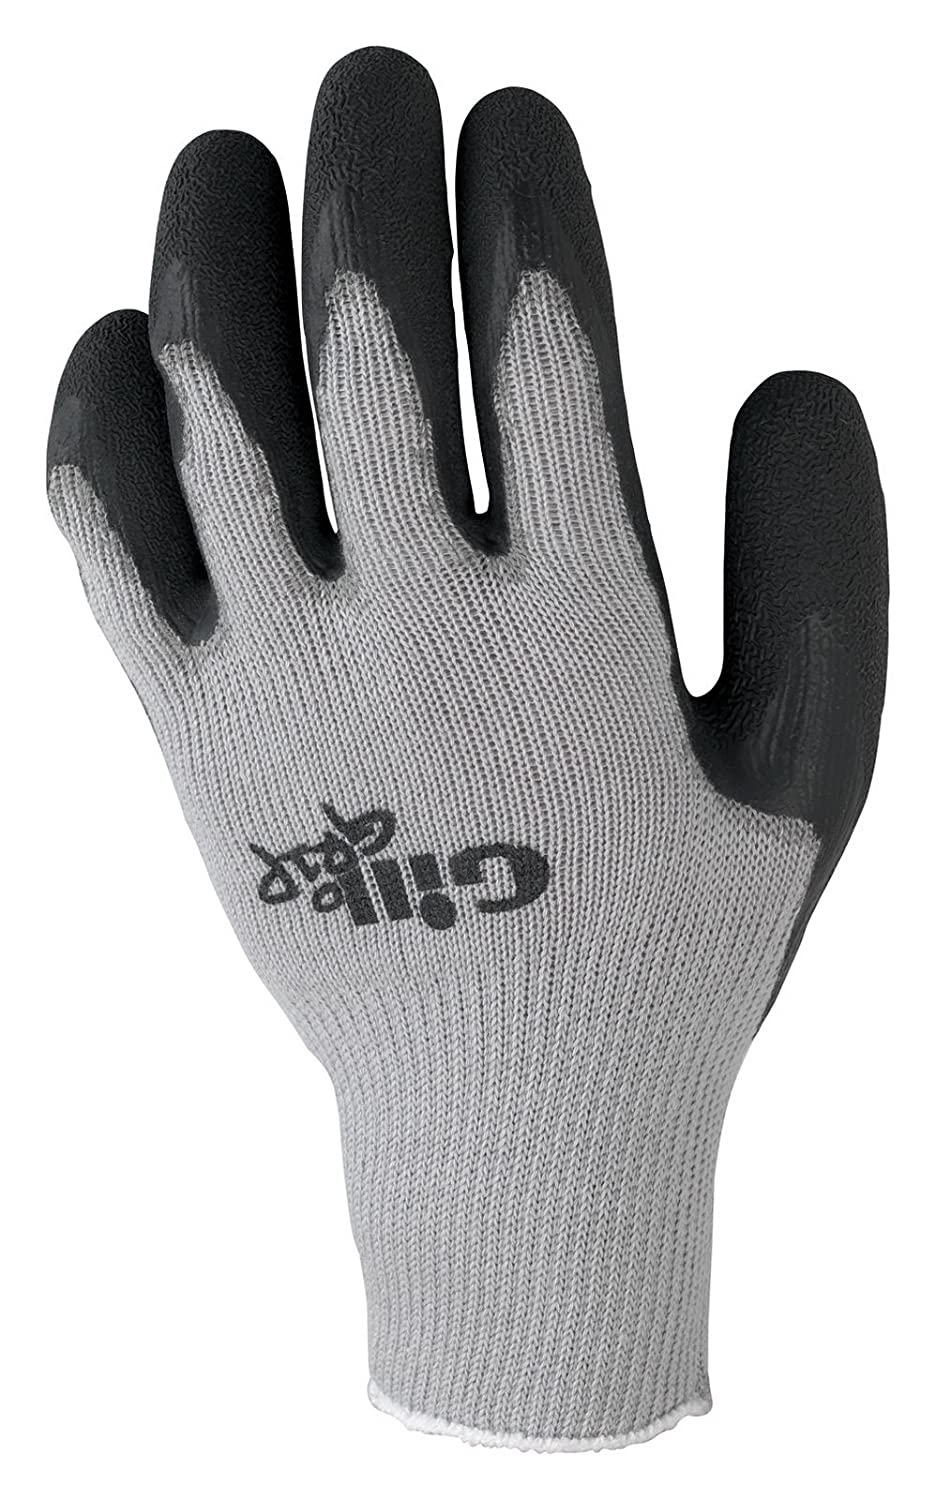 GillグリップSailing Gloves Small  B076ZTH6V4